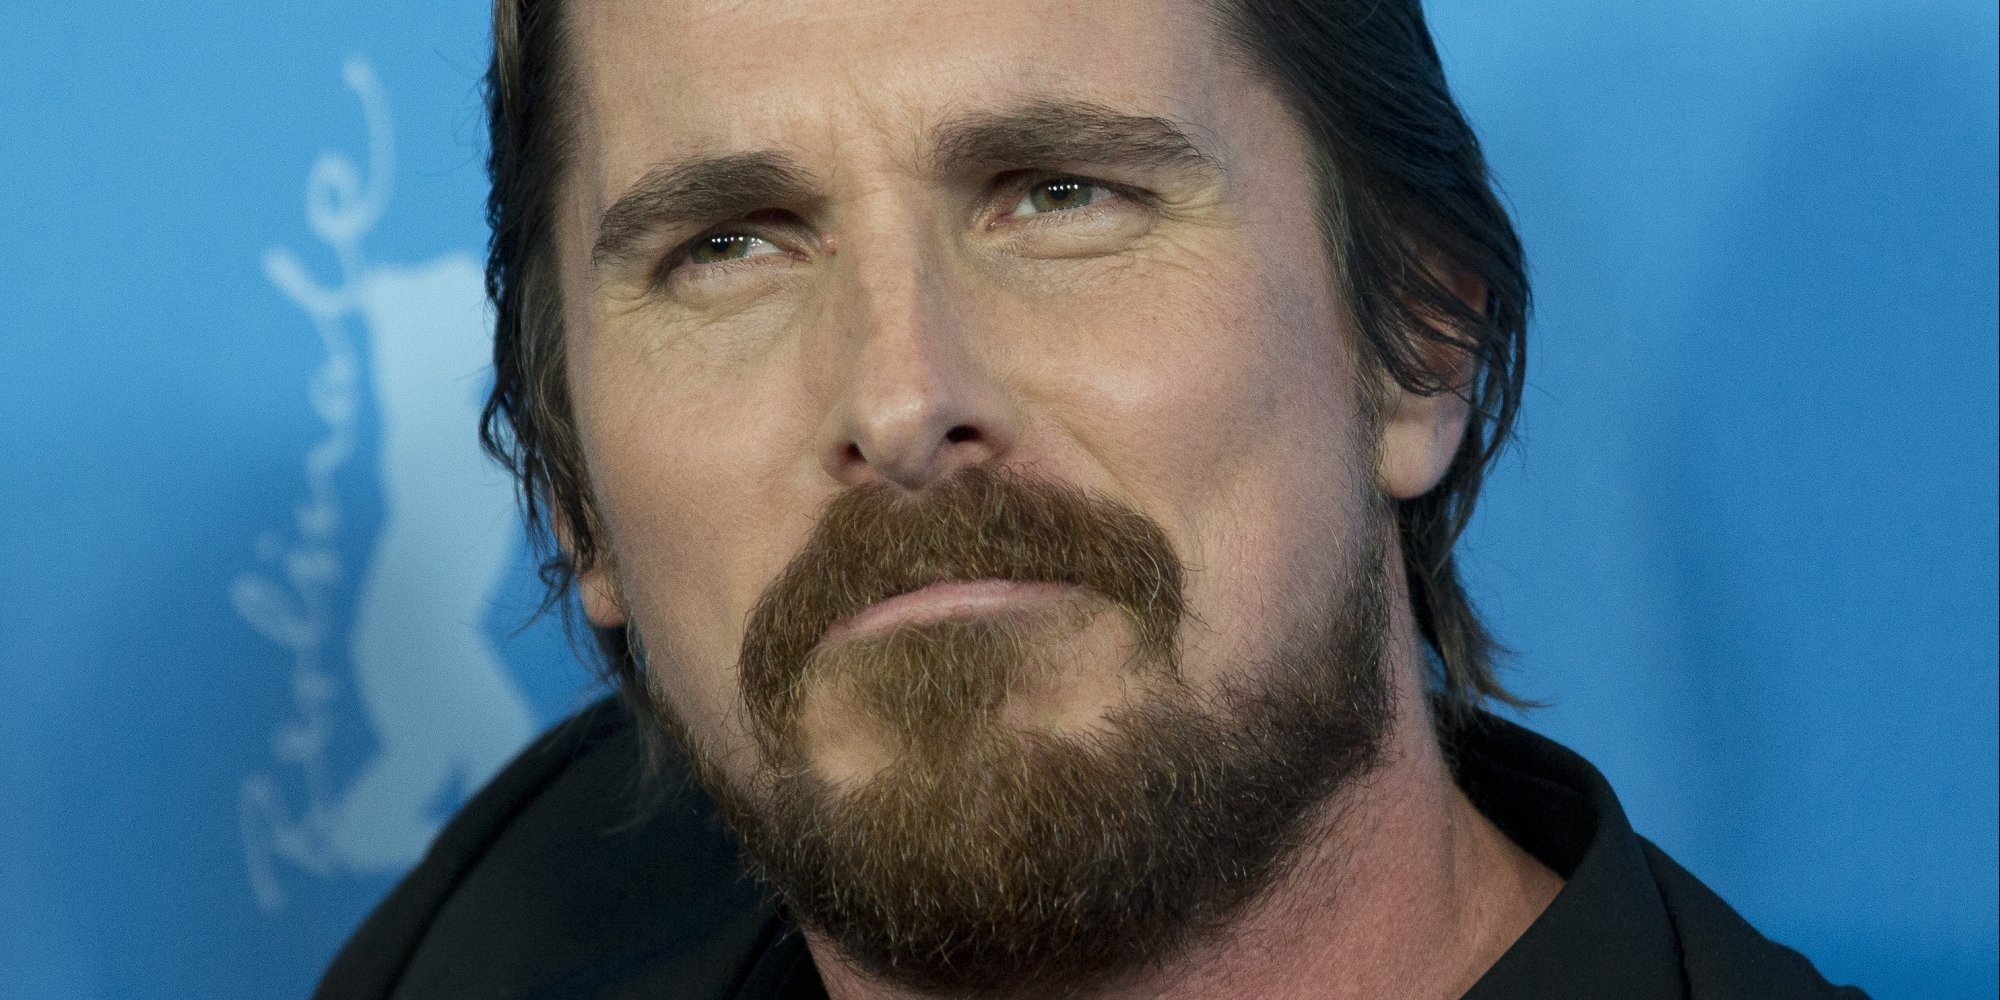 Christian Bale Says He's Still 'Jealous' Of Ben Affleck's Bat... Christian Bale